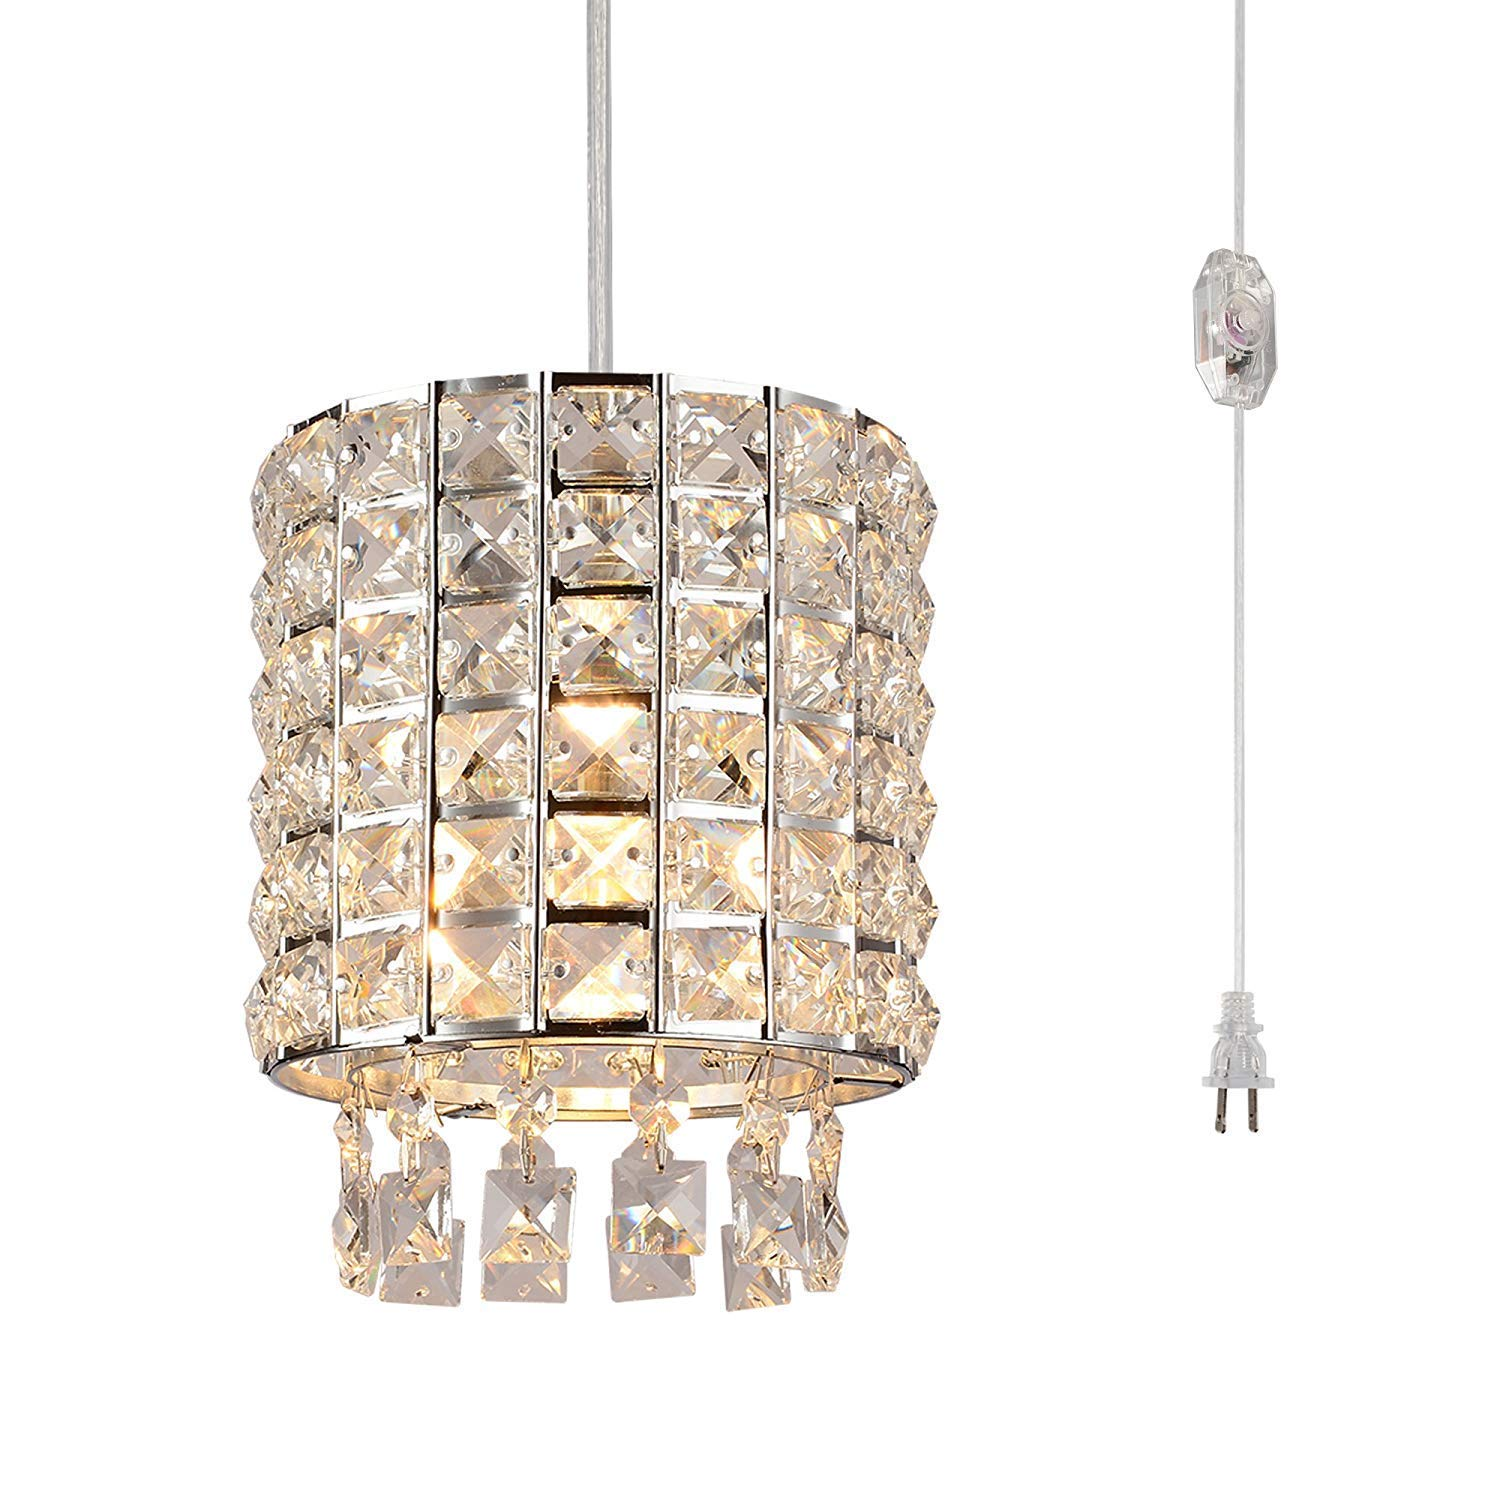 Plug-In Modern Crystal Chandelier Drop Pendant Lights with ON/OFF Dimmer Switch and 15' Clear Cord, Chrome Cylinder Style by Creatoplus